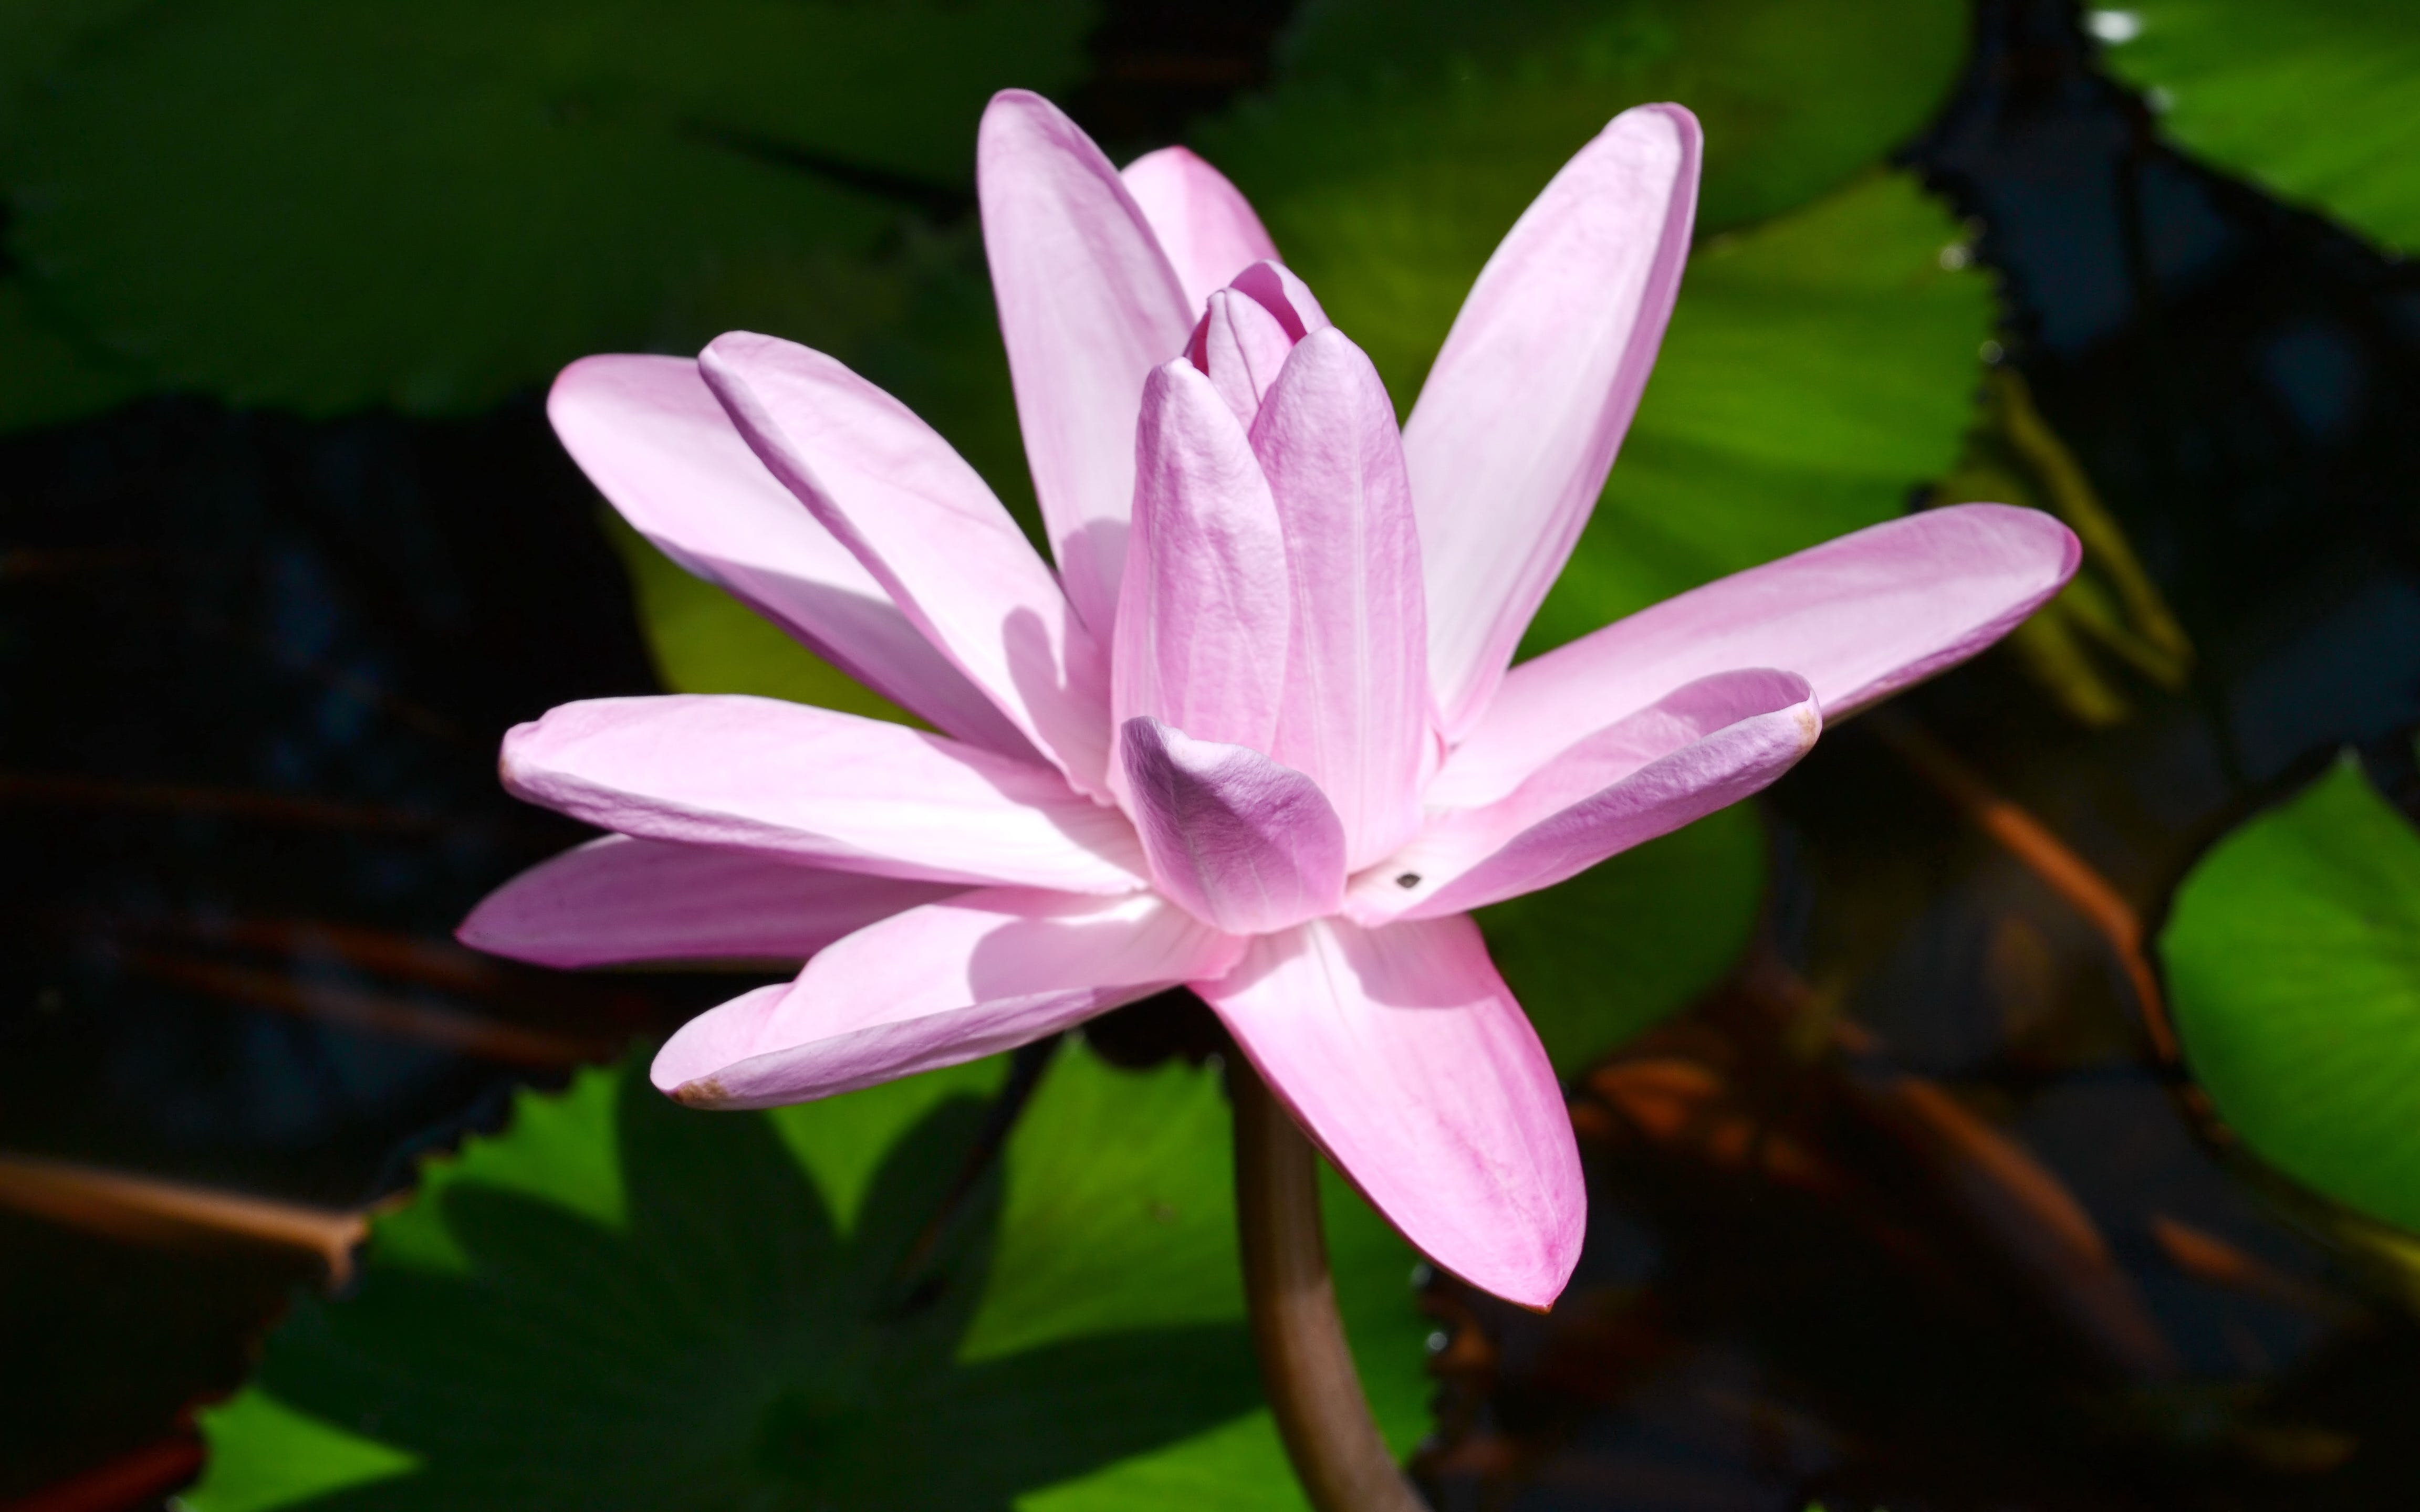 Closeup Photography of Pink Lotus Flower